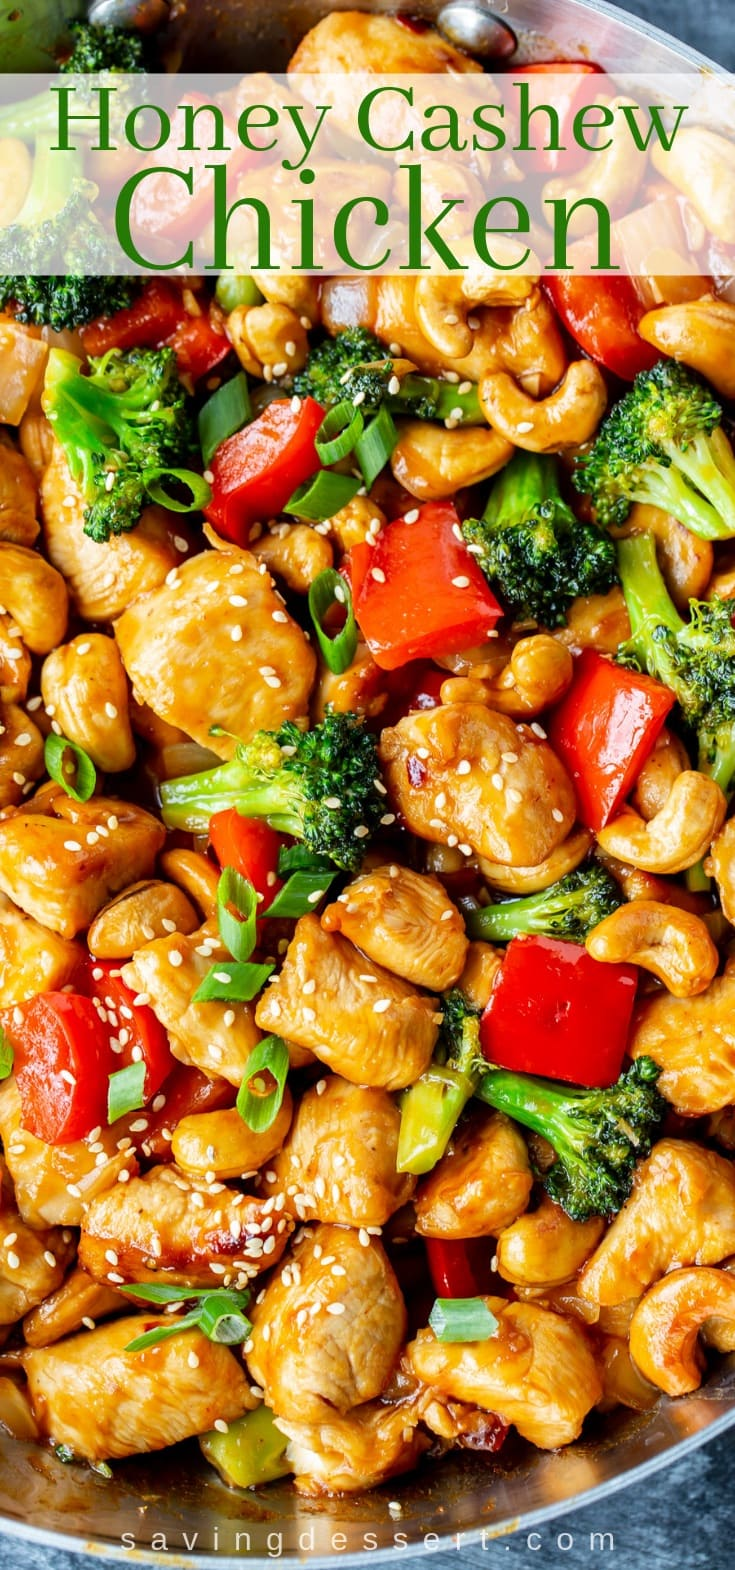 A skillet loaded with honey cashew chicken with red bell pepper and broccoli